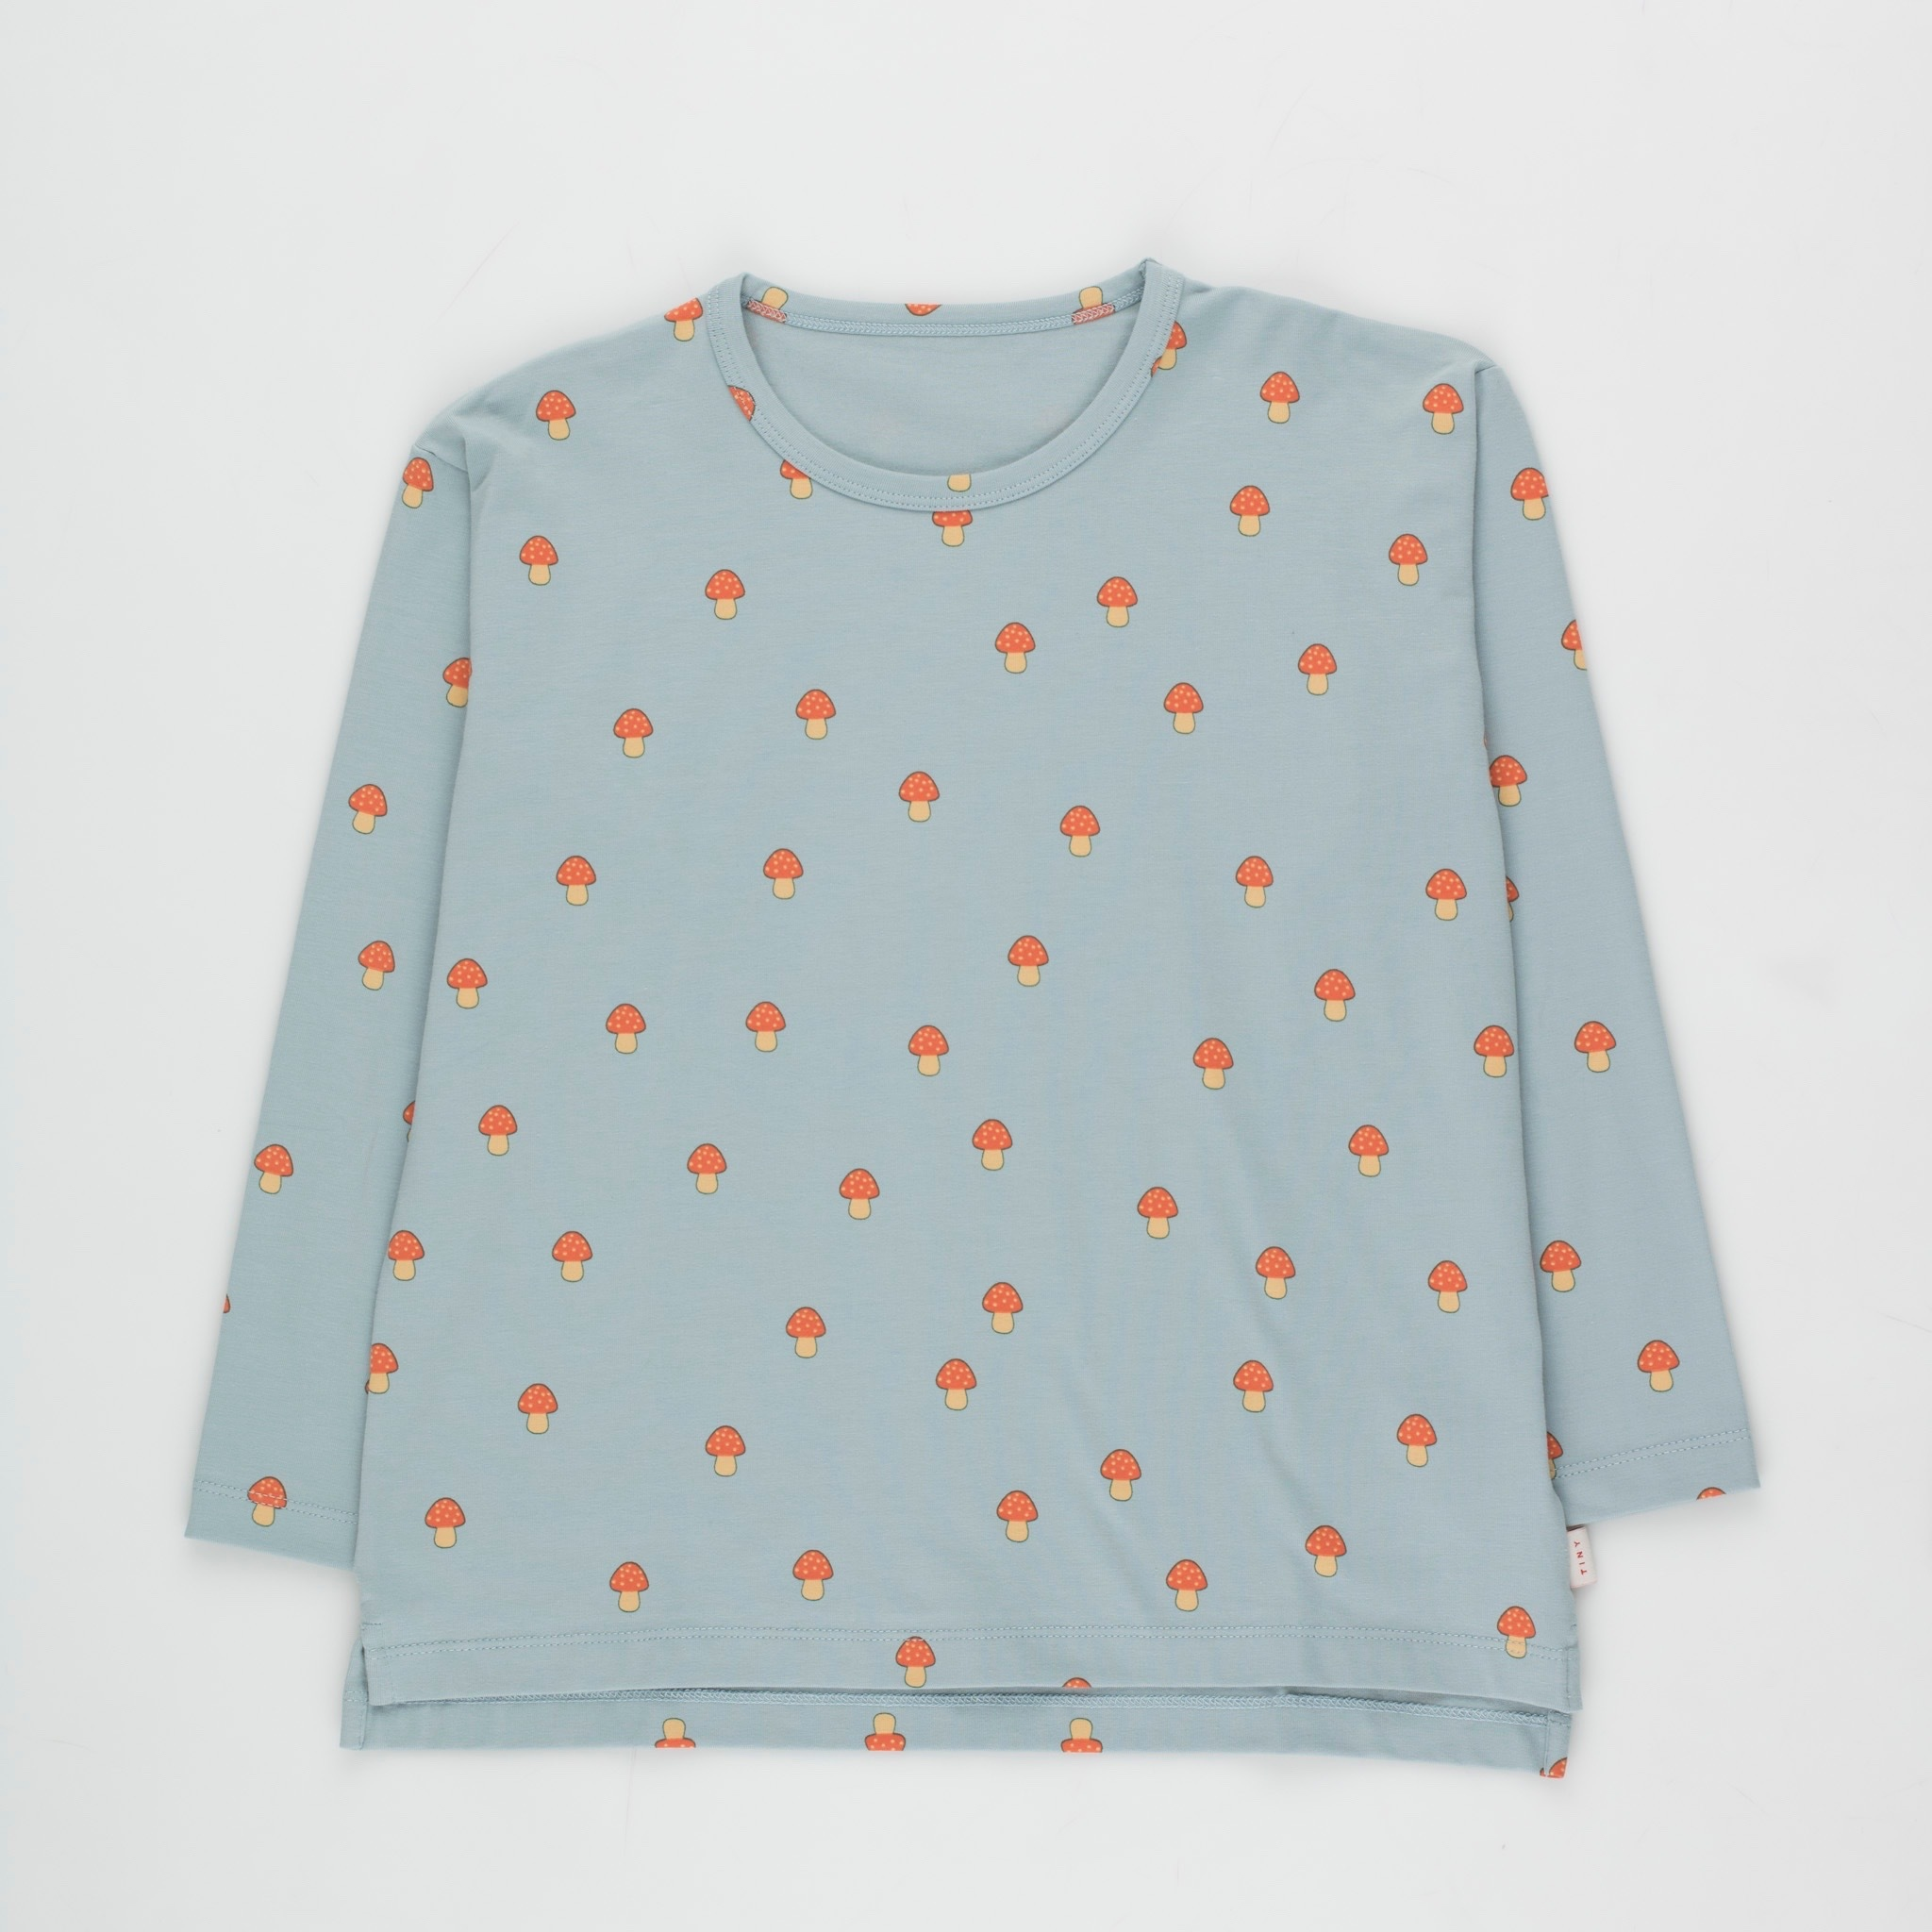 《TINYCOTTONS 2020AW》MUSHROOMS TEE / warm grey × red